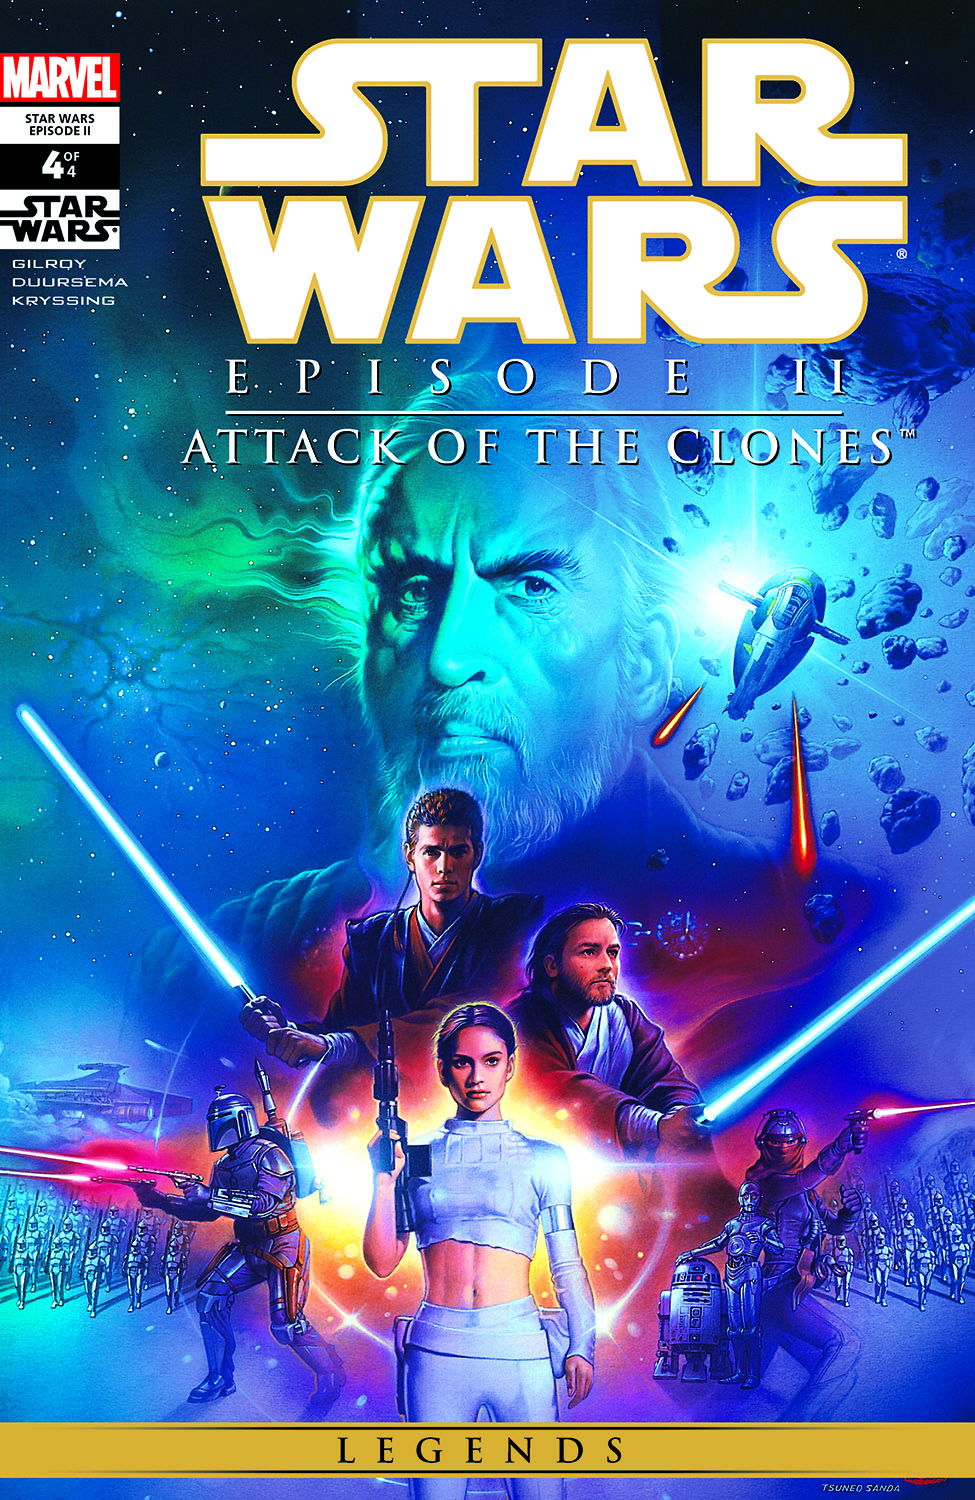 Star Wars: Episode Ii - Attack Of The Clones (2002) #4